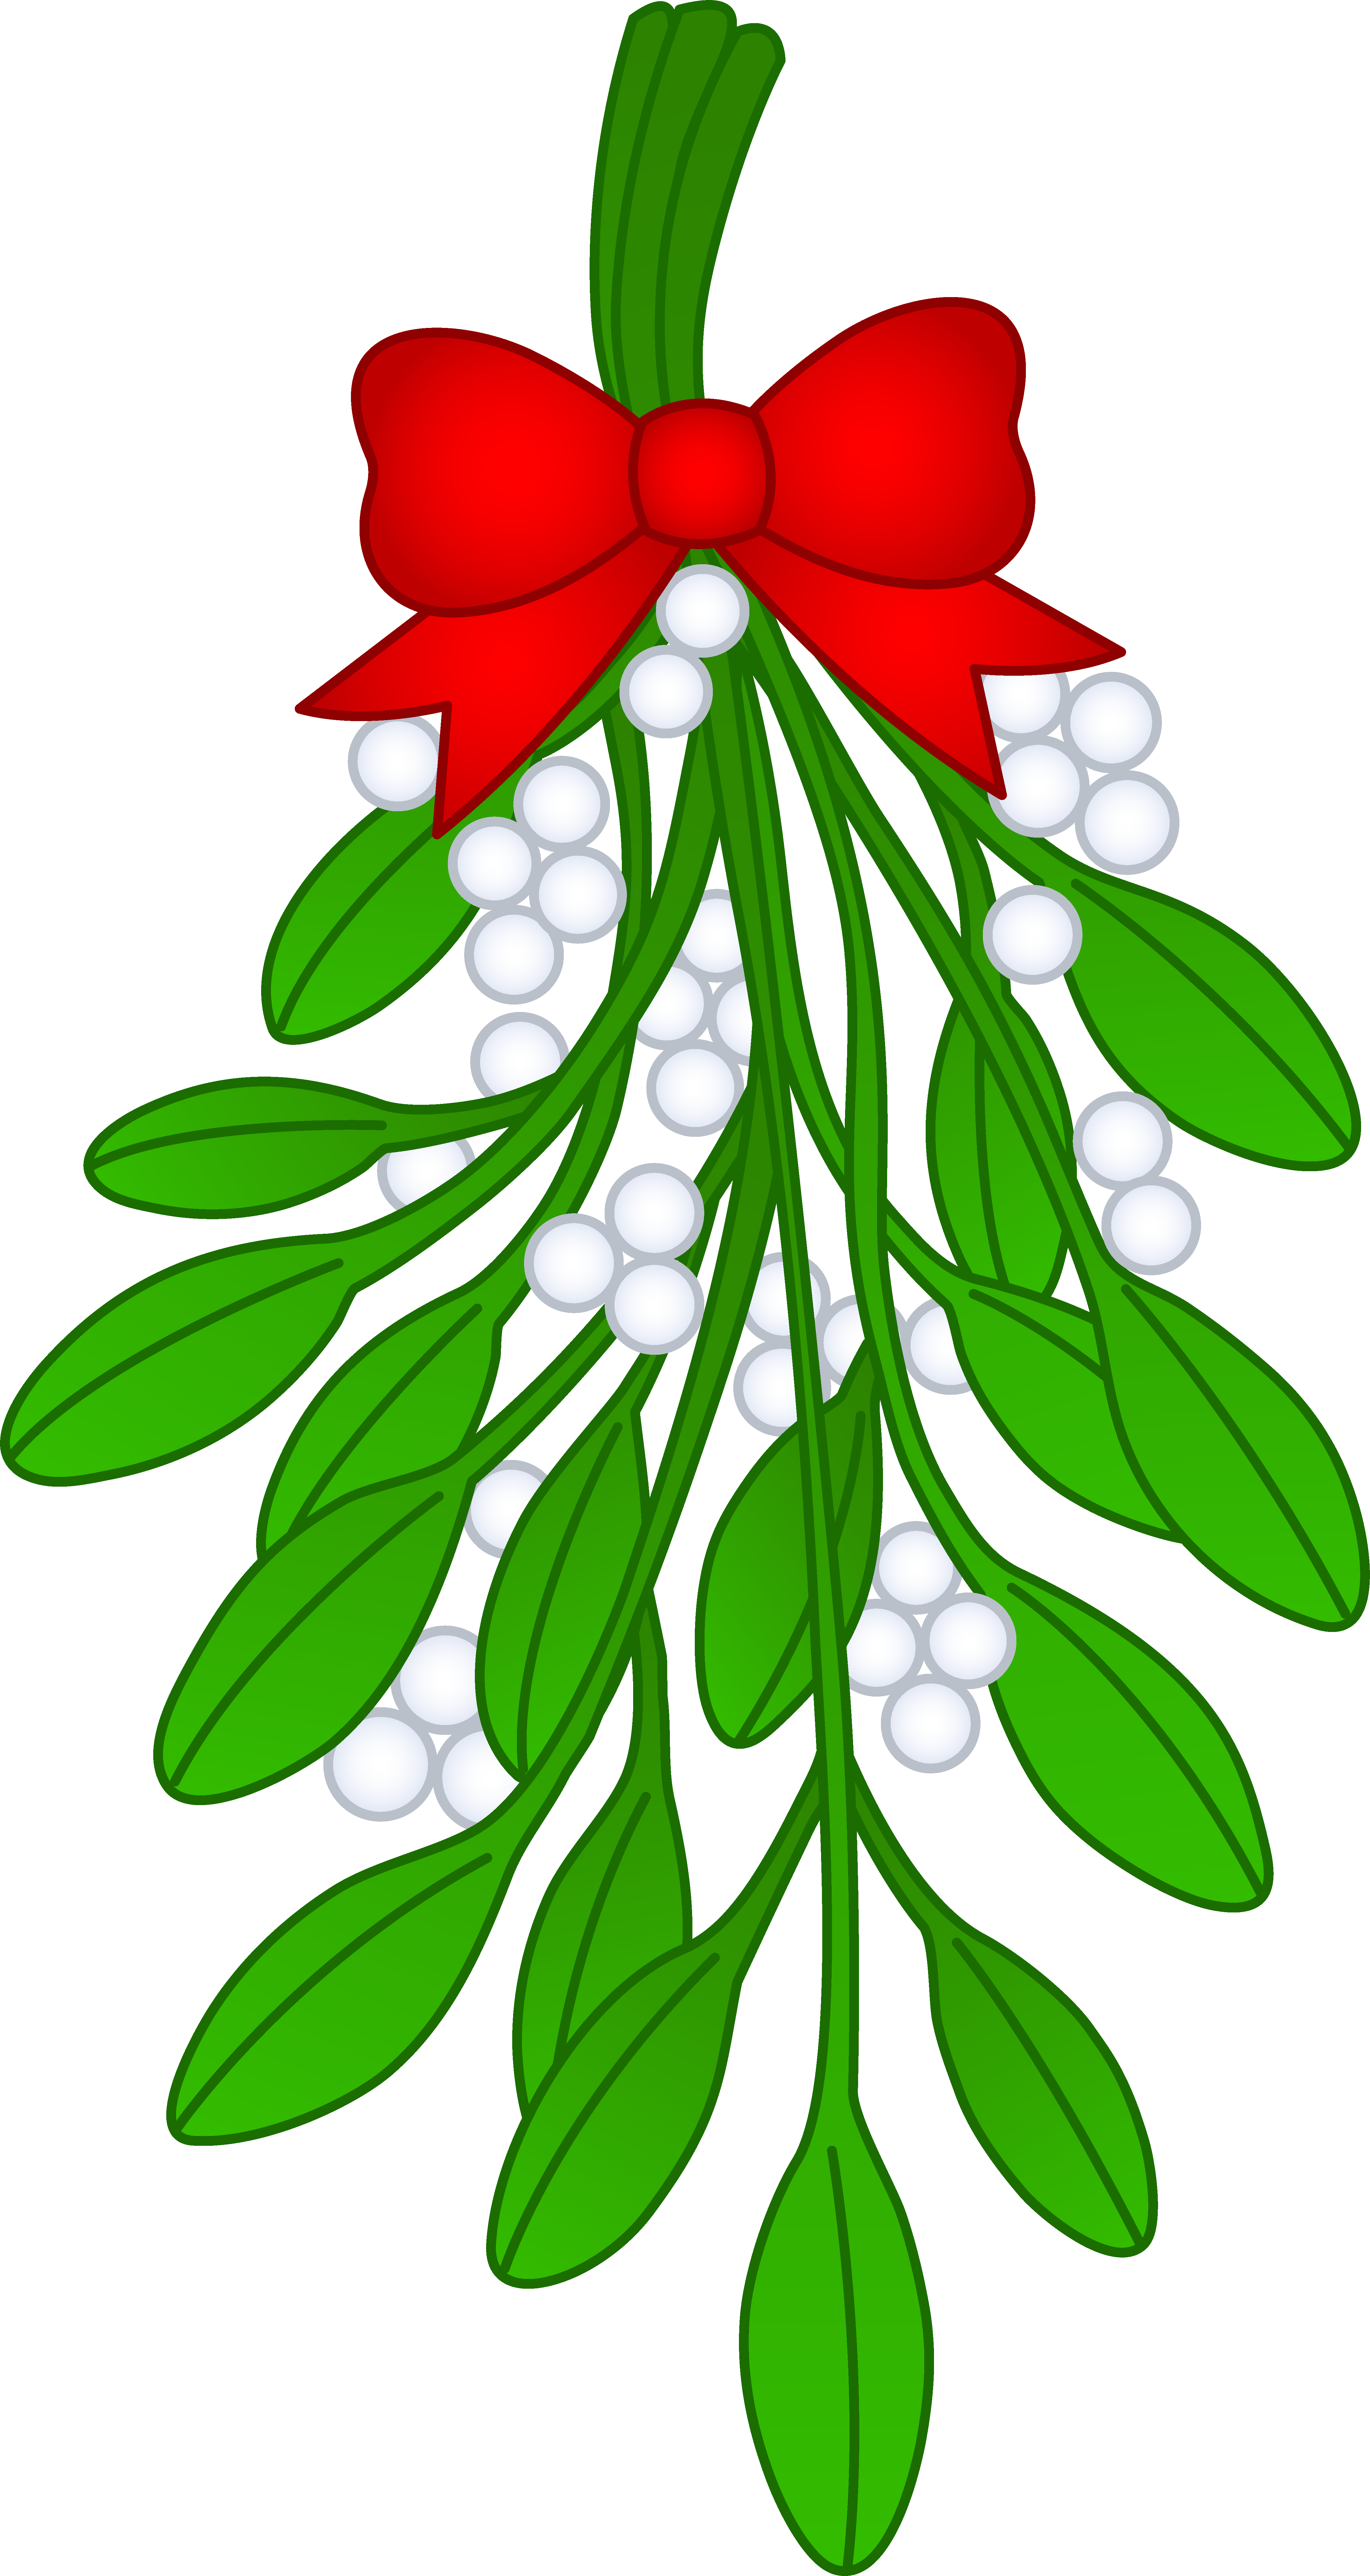 kissing carefree wollow pinterest christmas mistletoe and